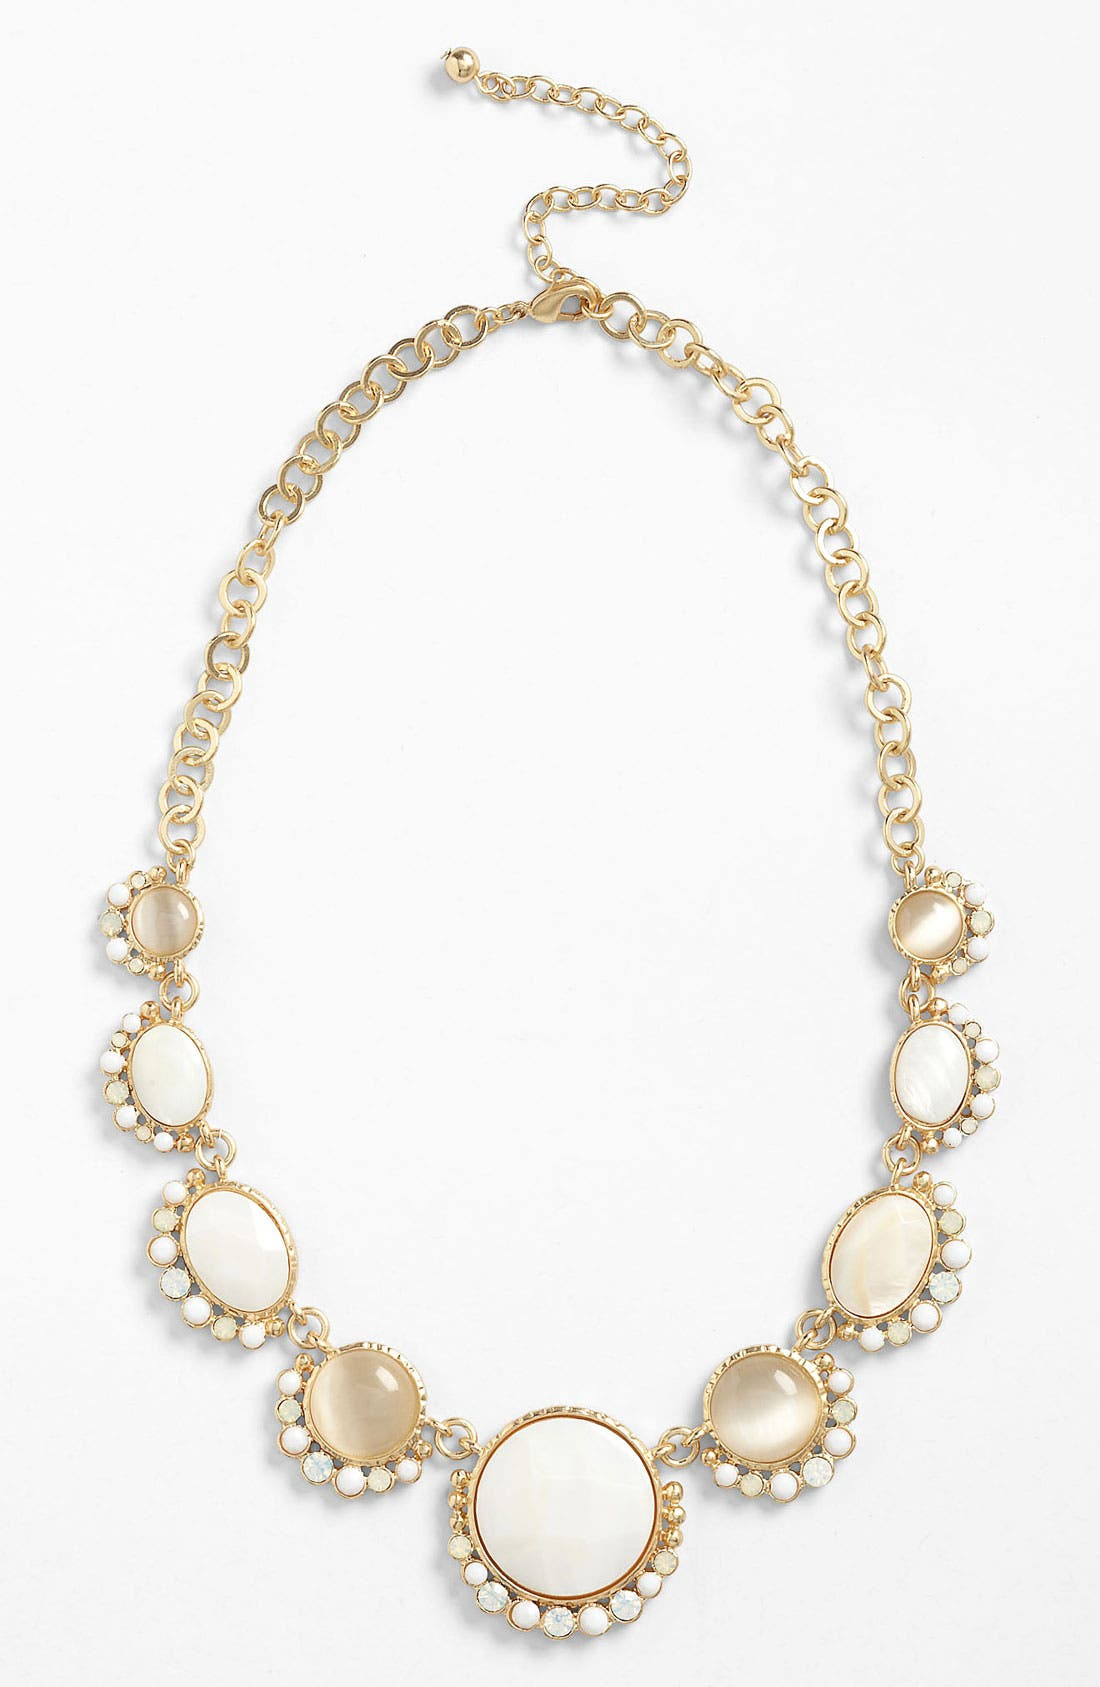 Main Image - Nordstrom 'Santorini' Collar Necklace